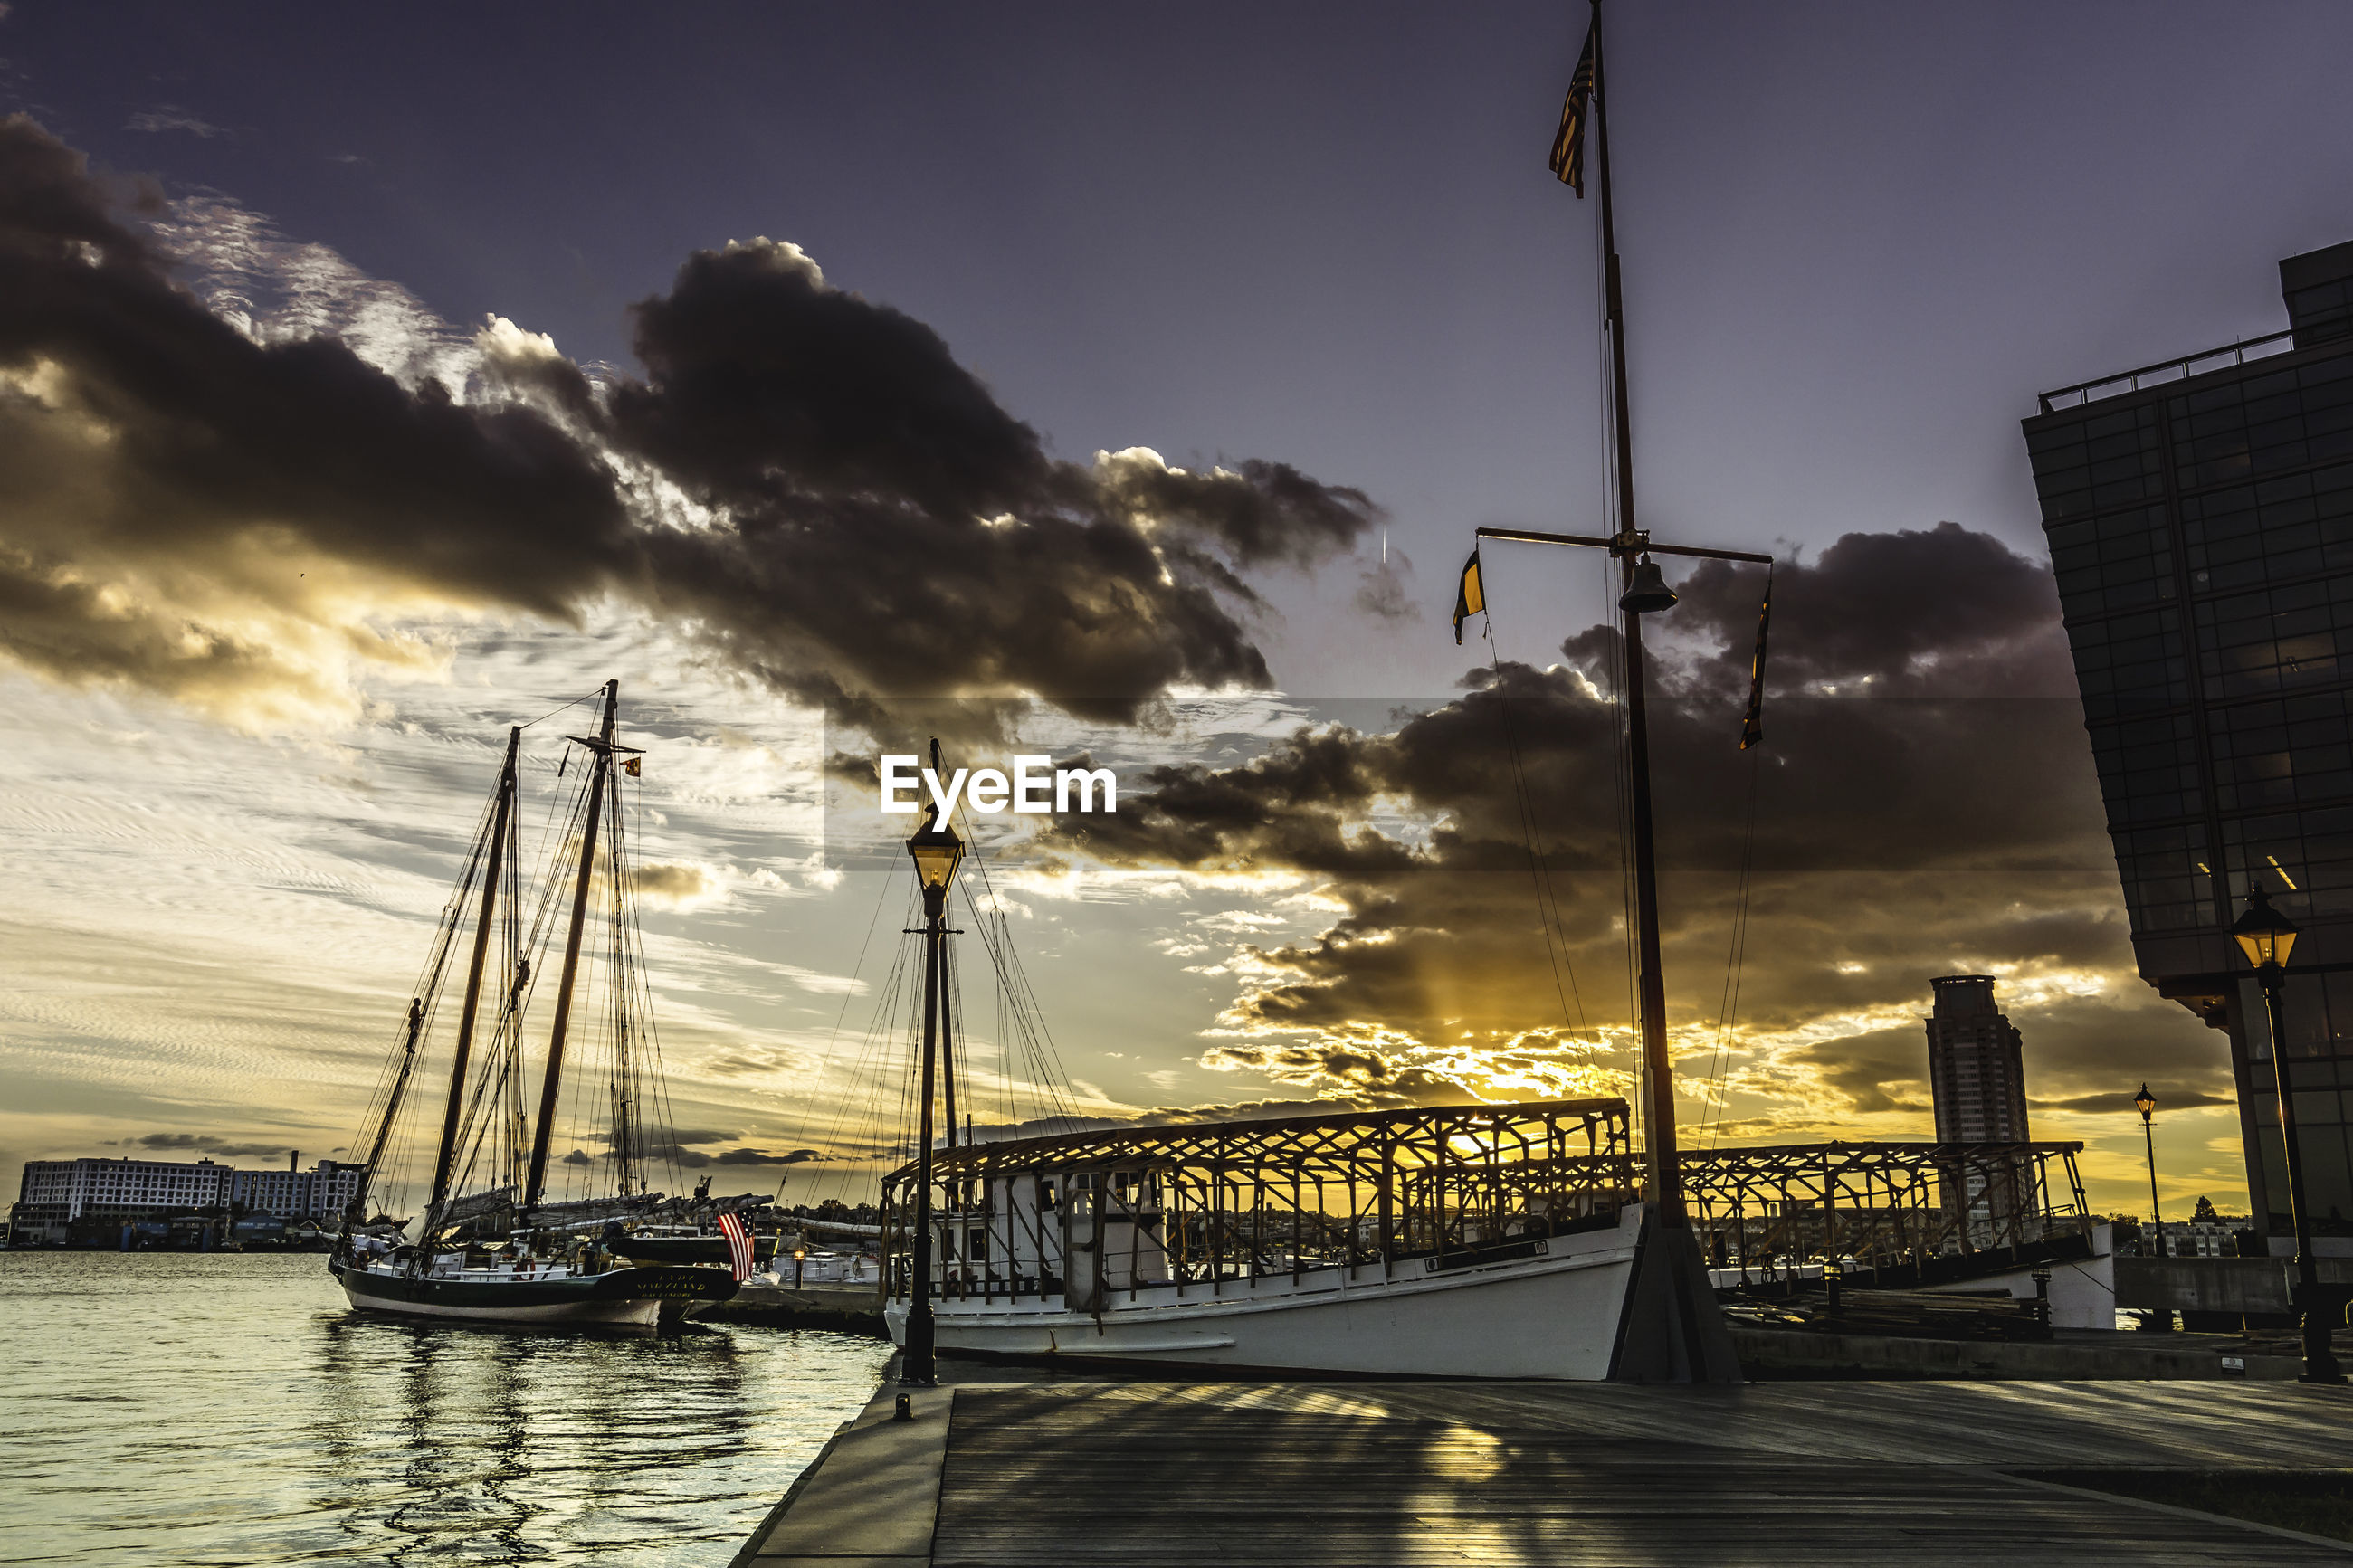 sky, cloud - sky, sunset, transportation, travel destinations, outdoors, city, nautical vessel, architecture, mode of transport, no people, built structure, water, sunlight, nature, street light, building exterior, scenics, mast, beauty in nature, day